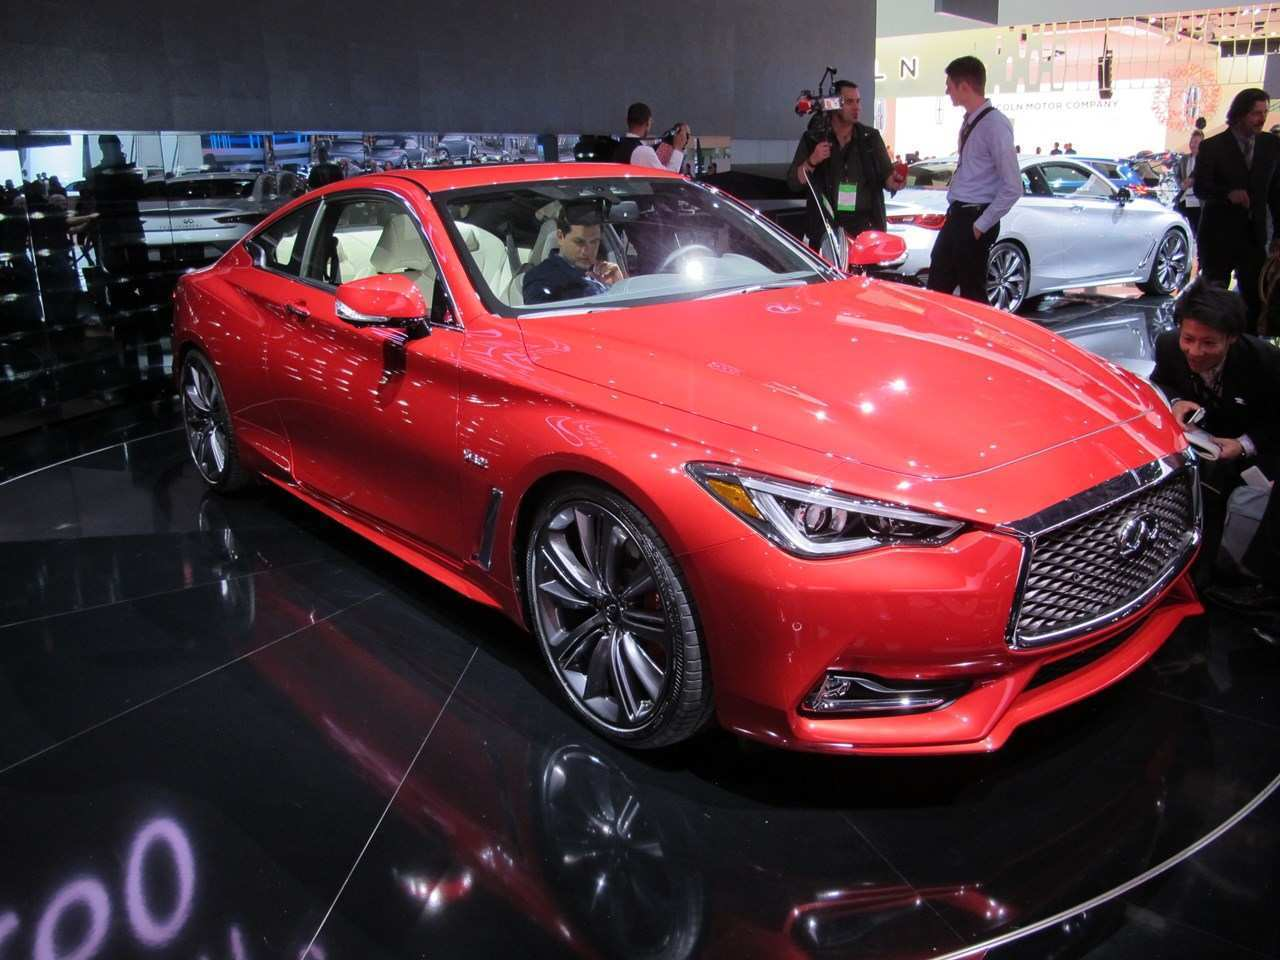 96 New 2020 Infiniti Q60 Exterior Date Reviews for 2020 Infiniti Q60 Exterior Date